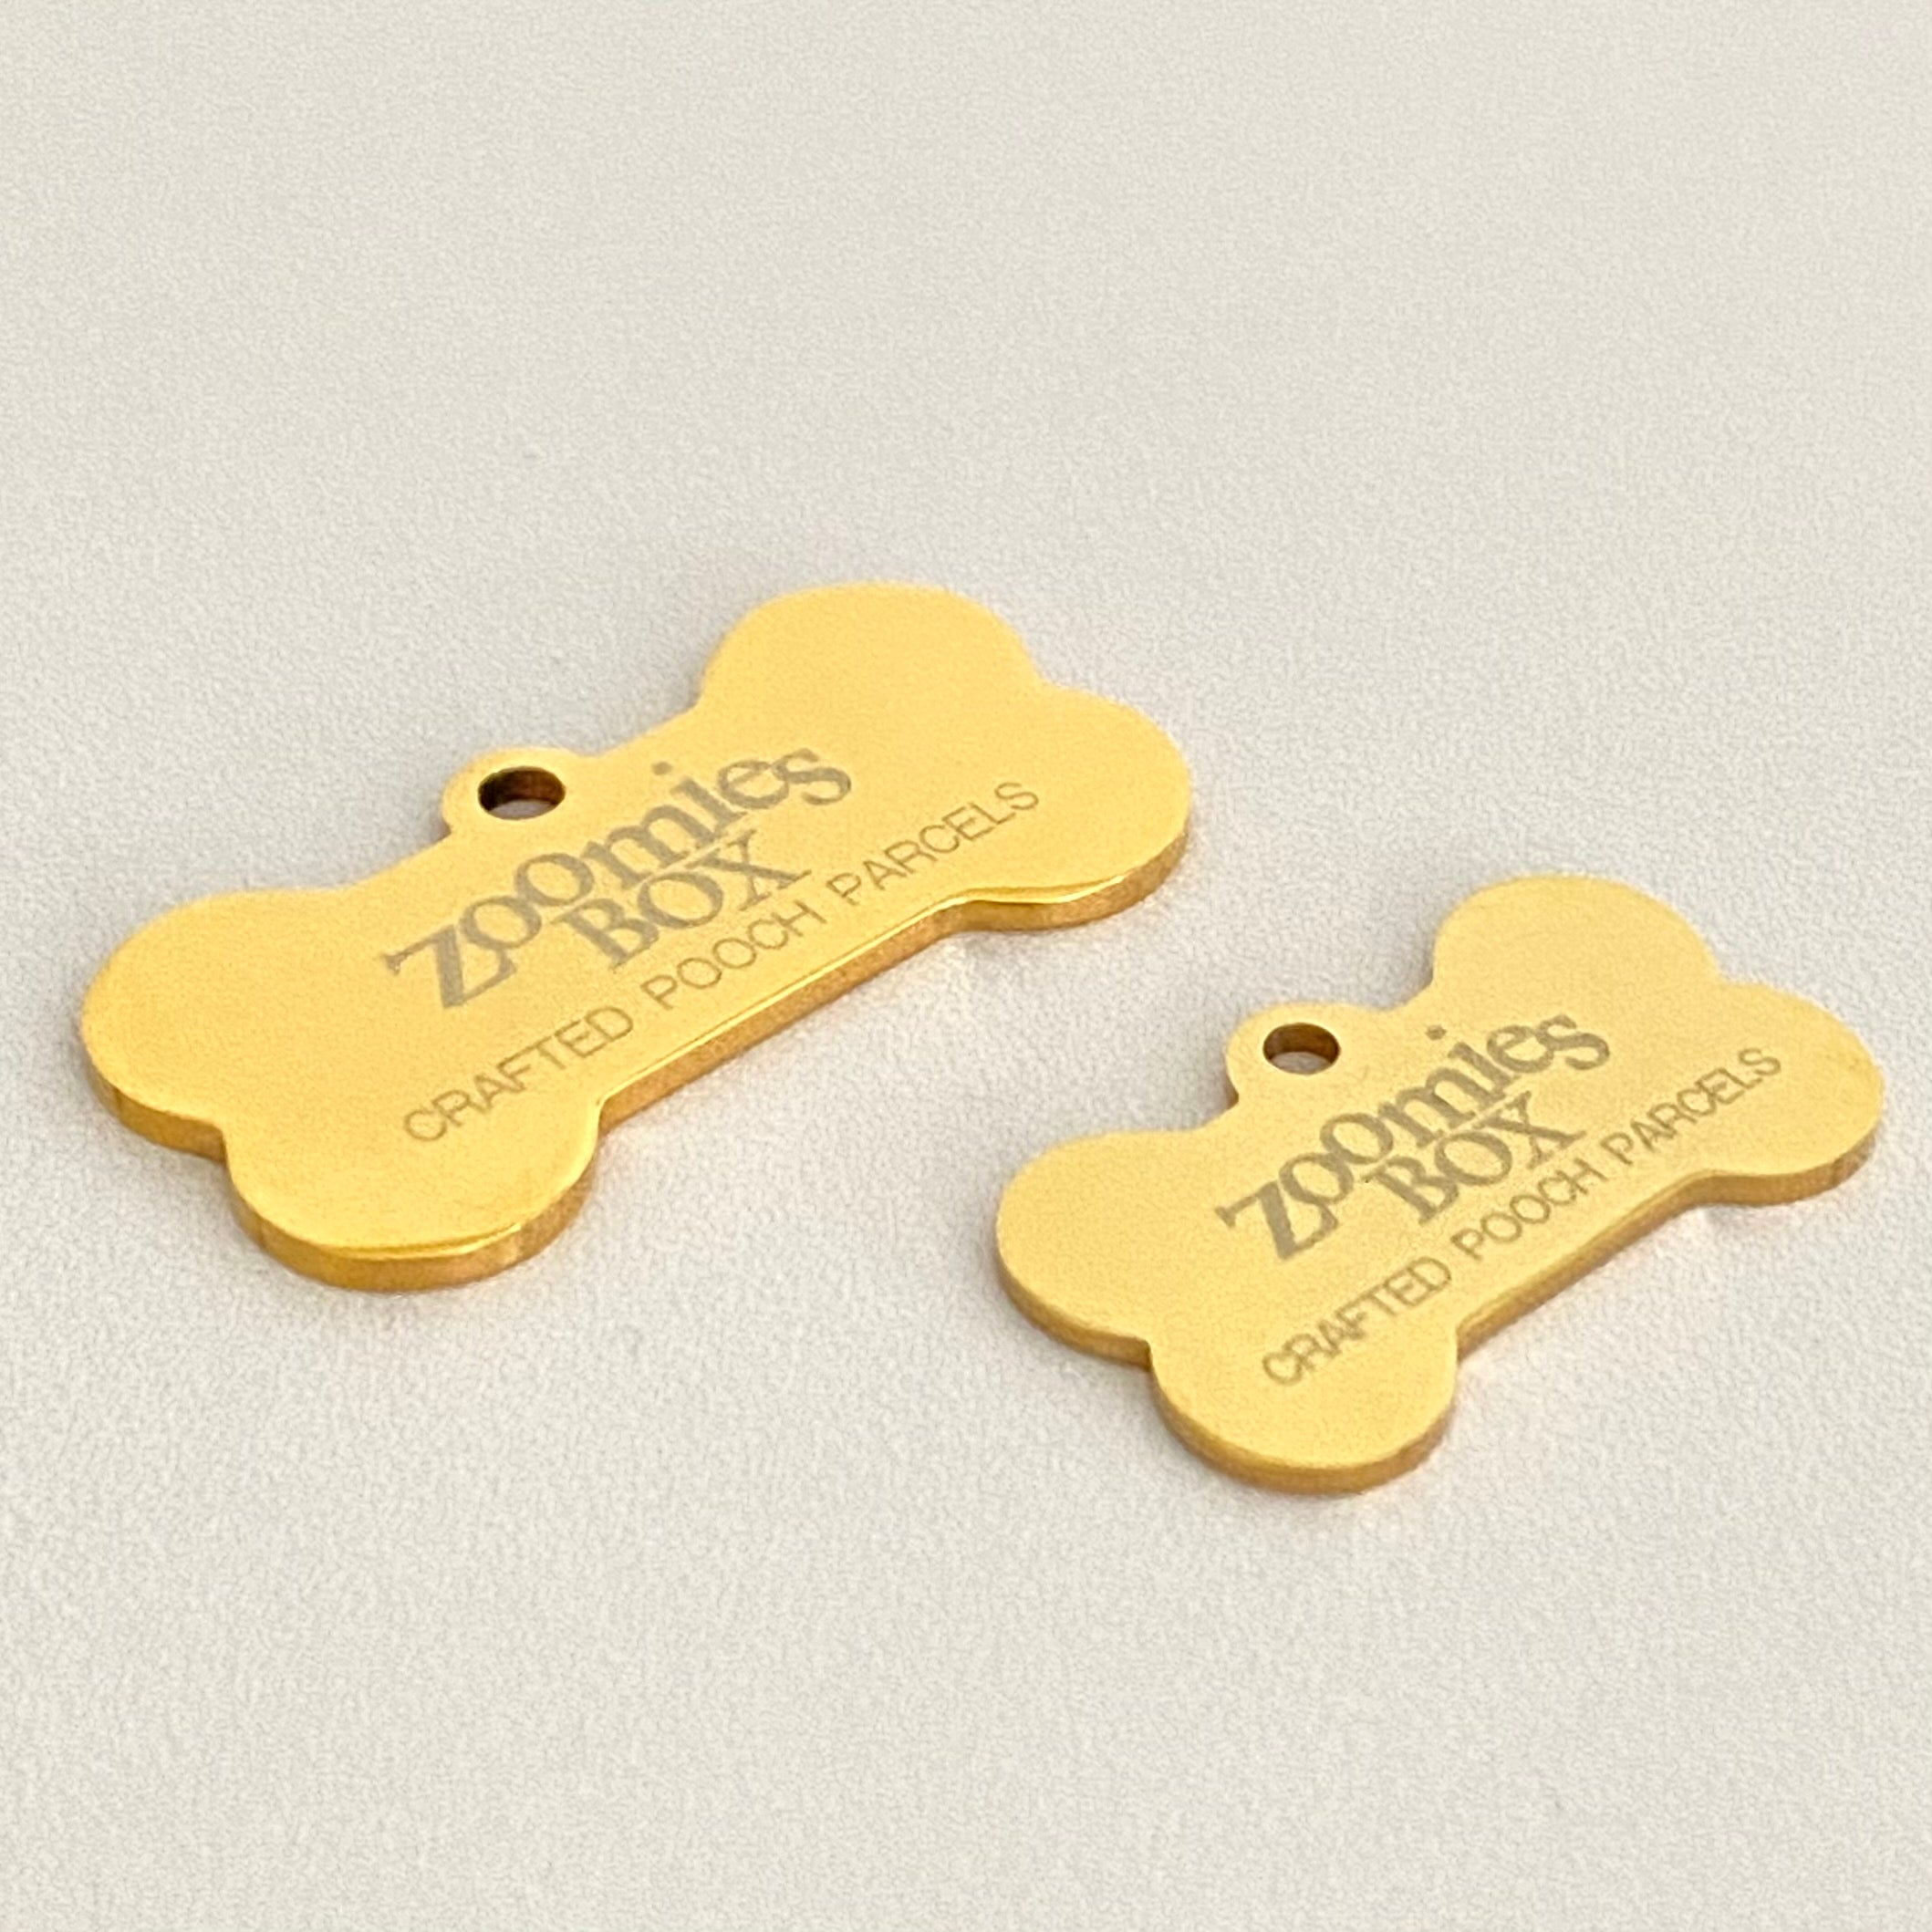 Engraved Dog ID Tags - Zoomies Box